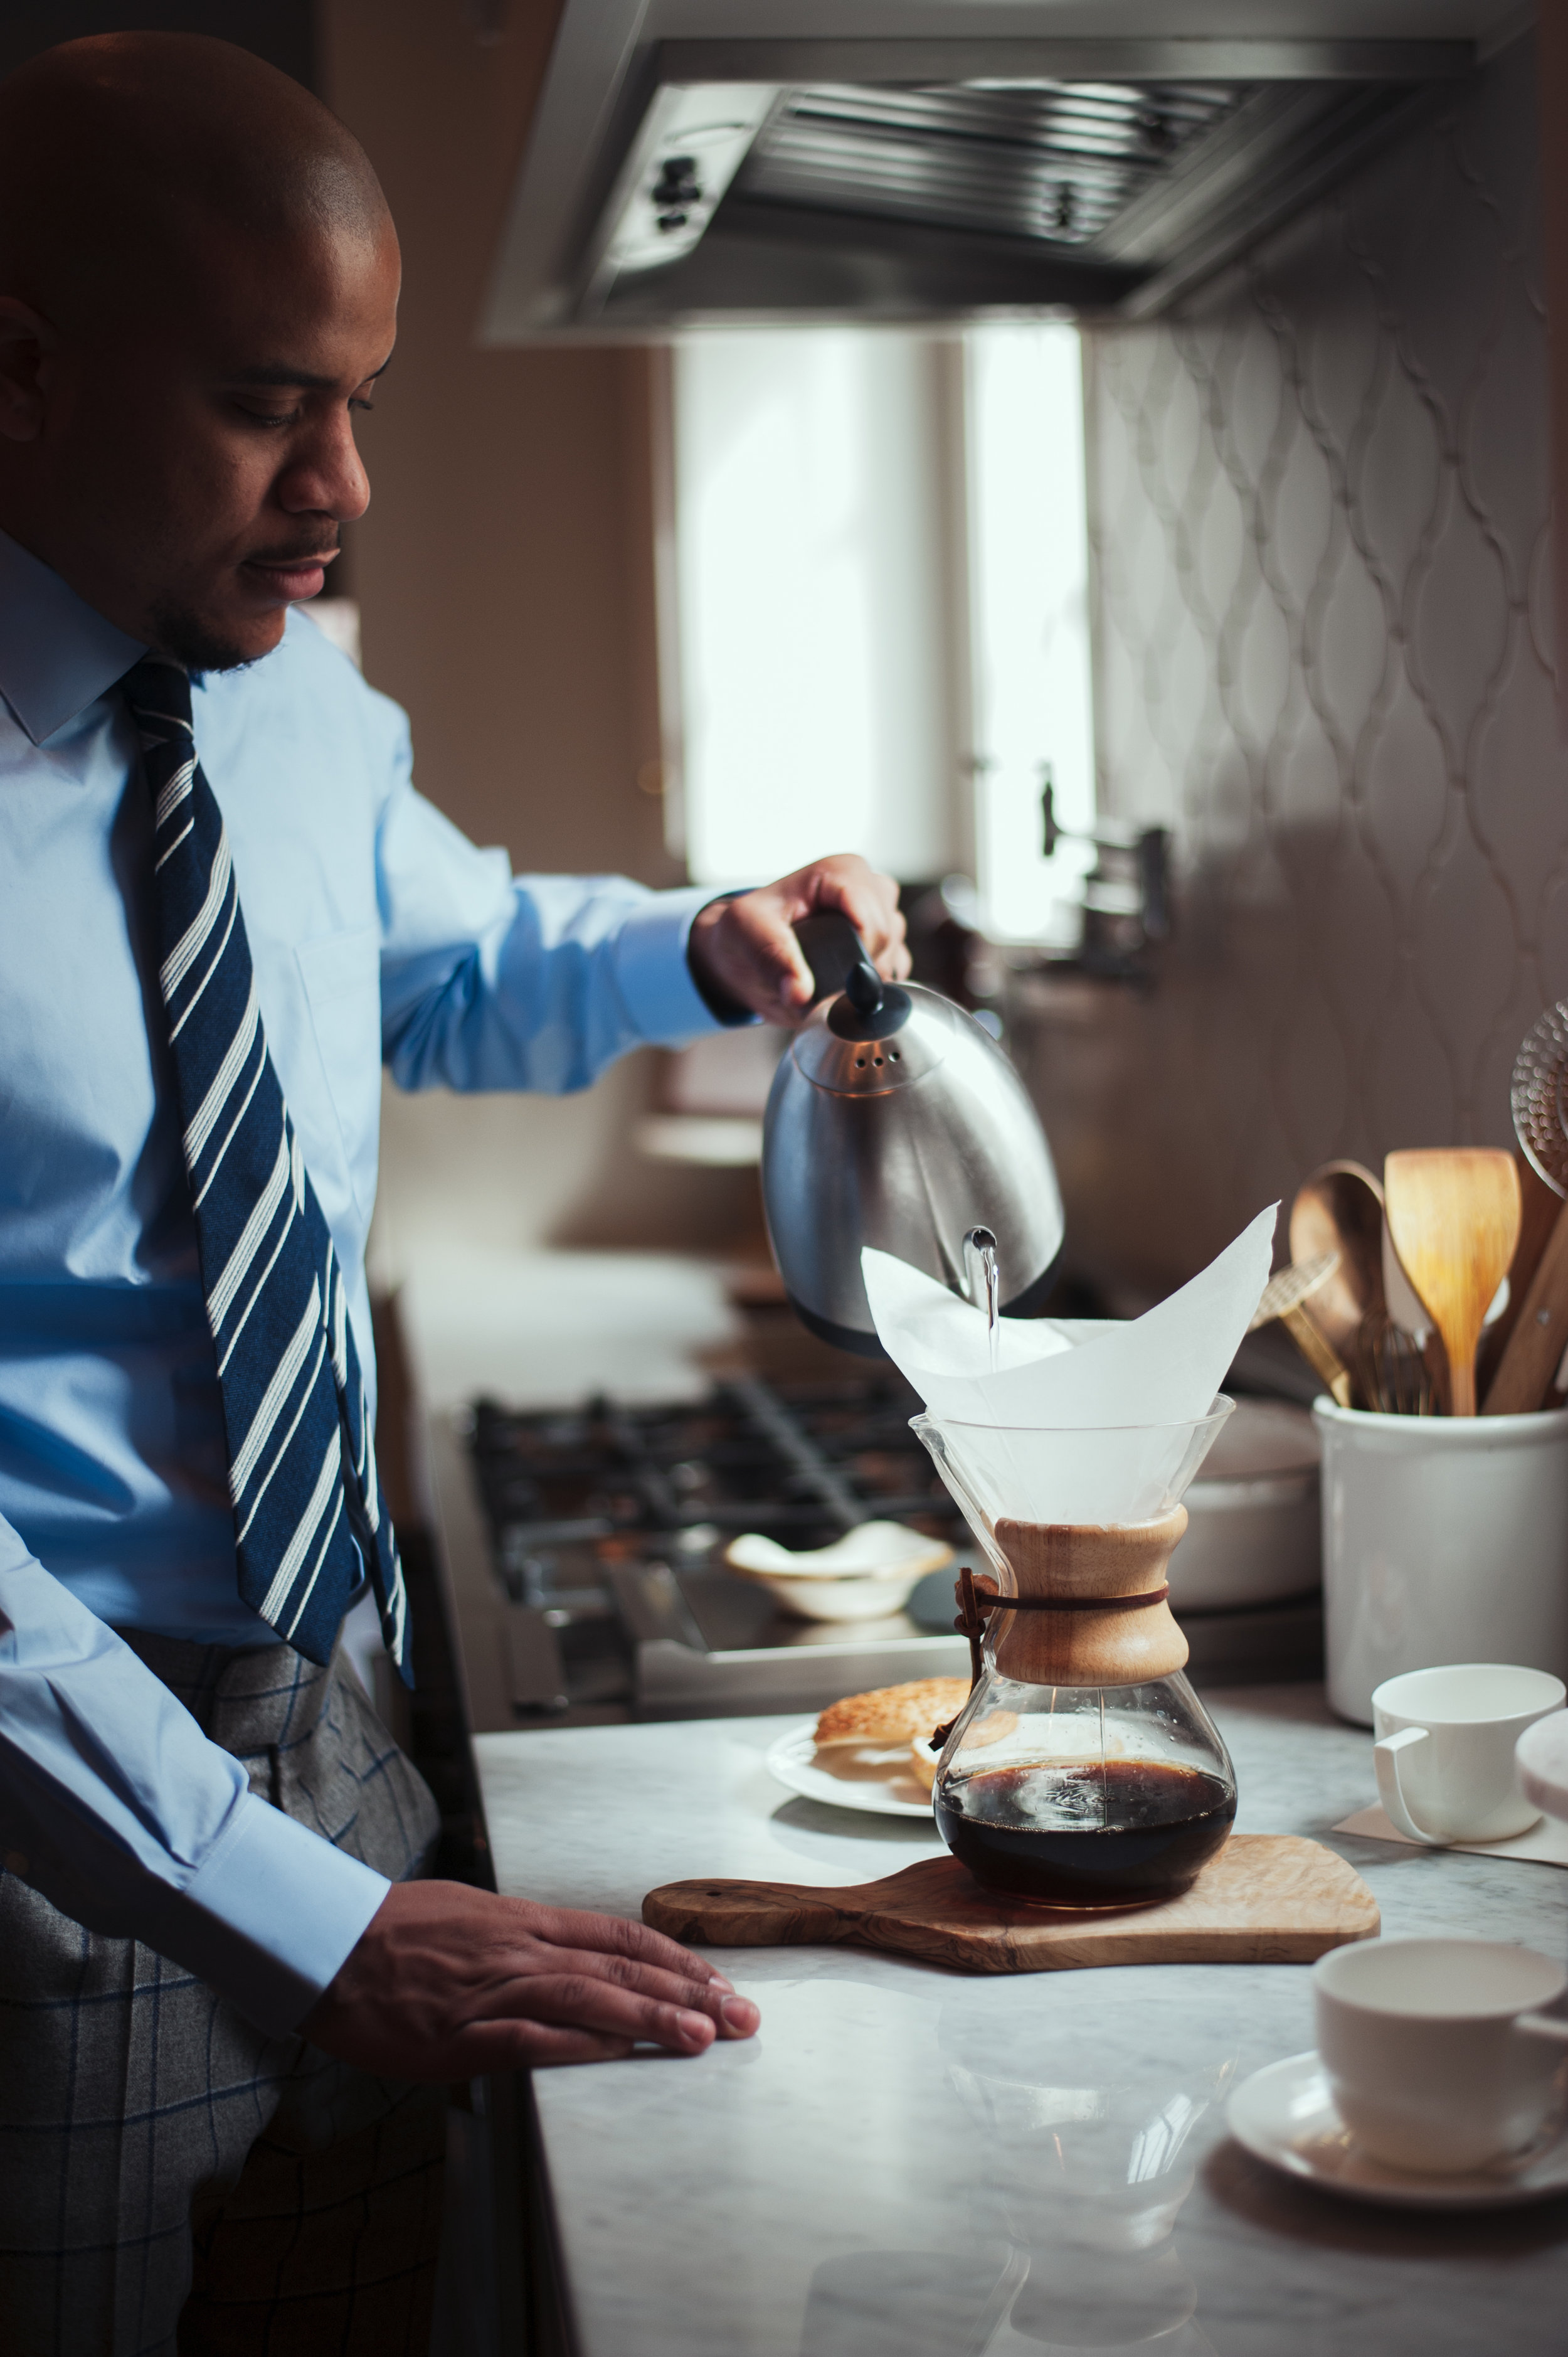 pour over coffee morning routine in blue and gray custom suit